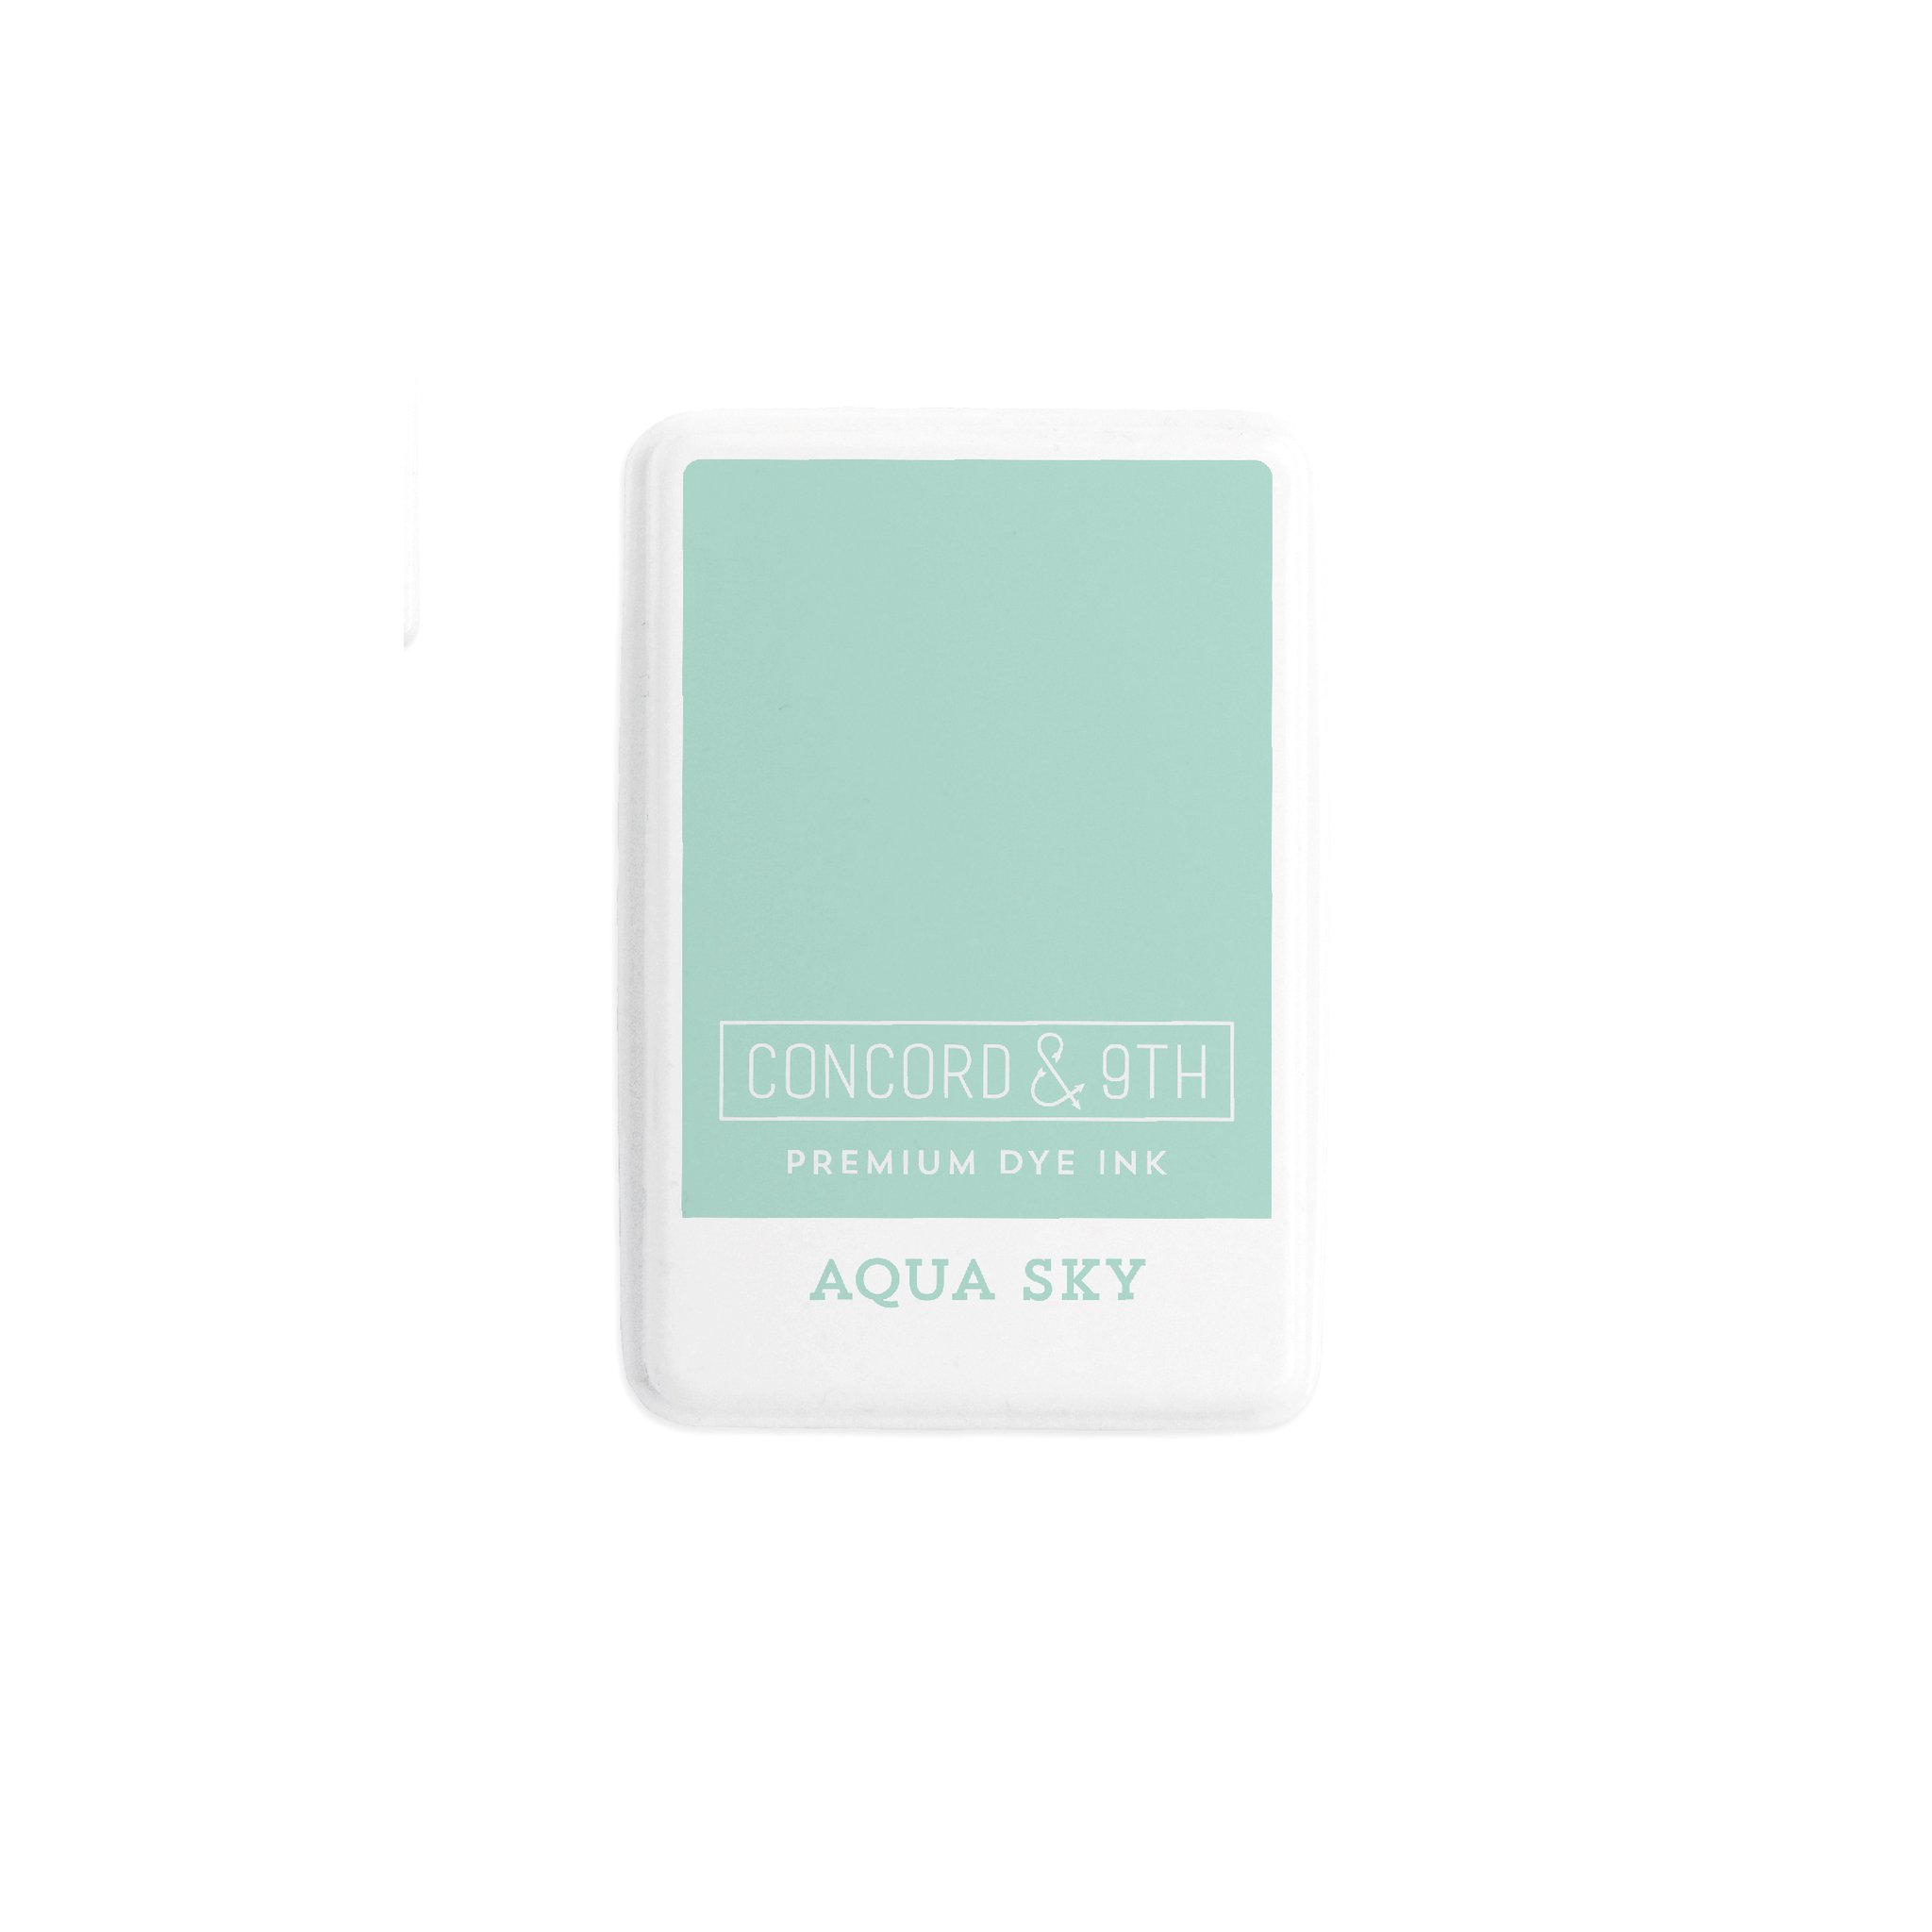 *NEW* - Concord & 9th - AQUA SKY INK PAD